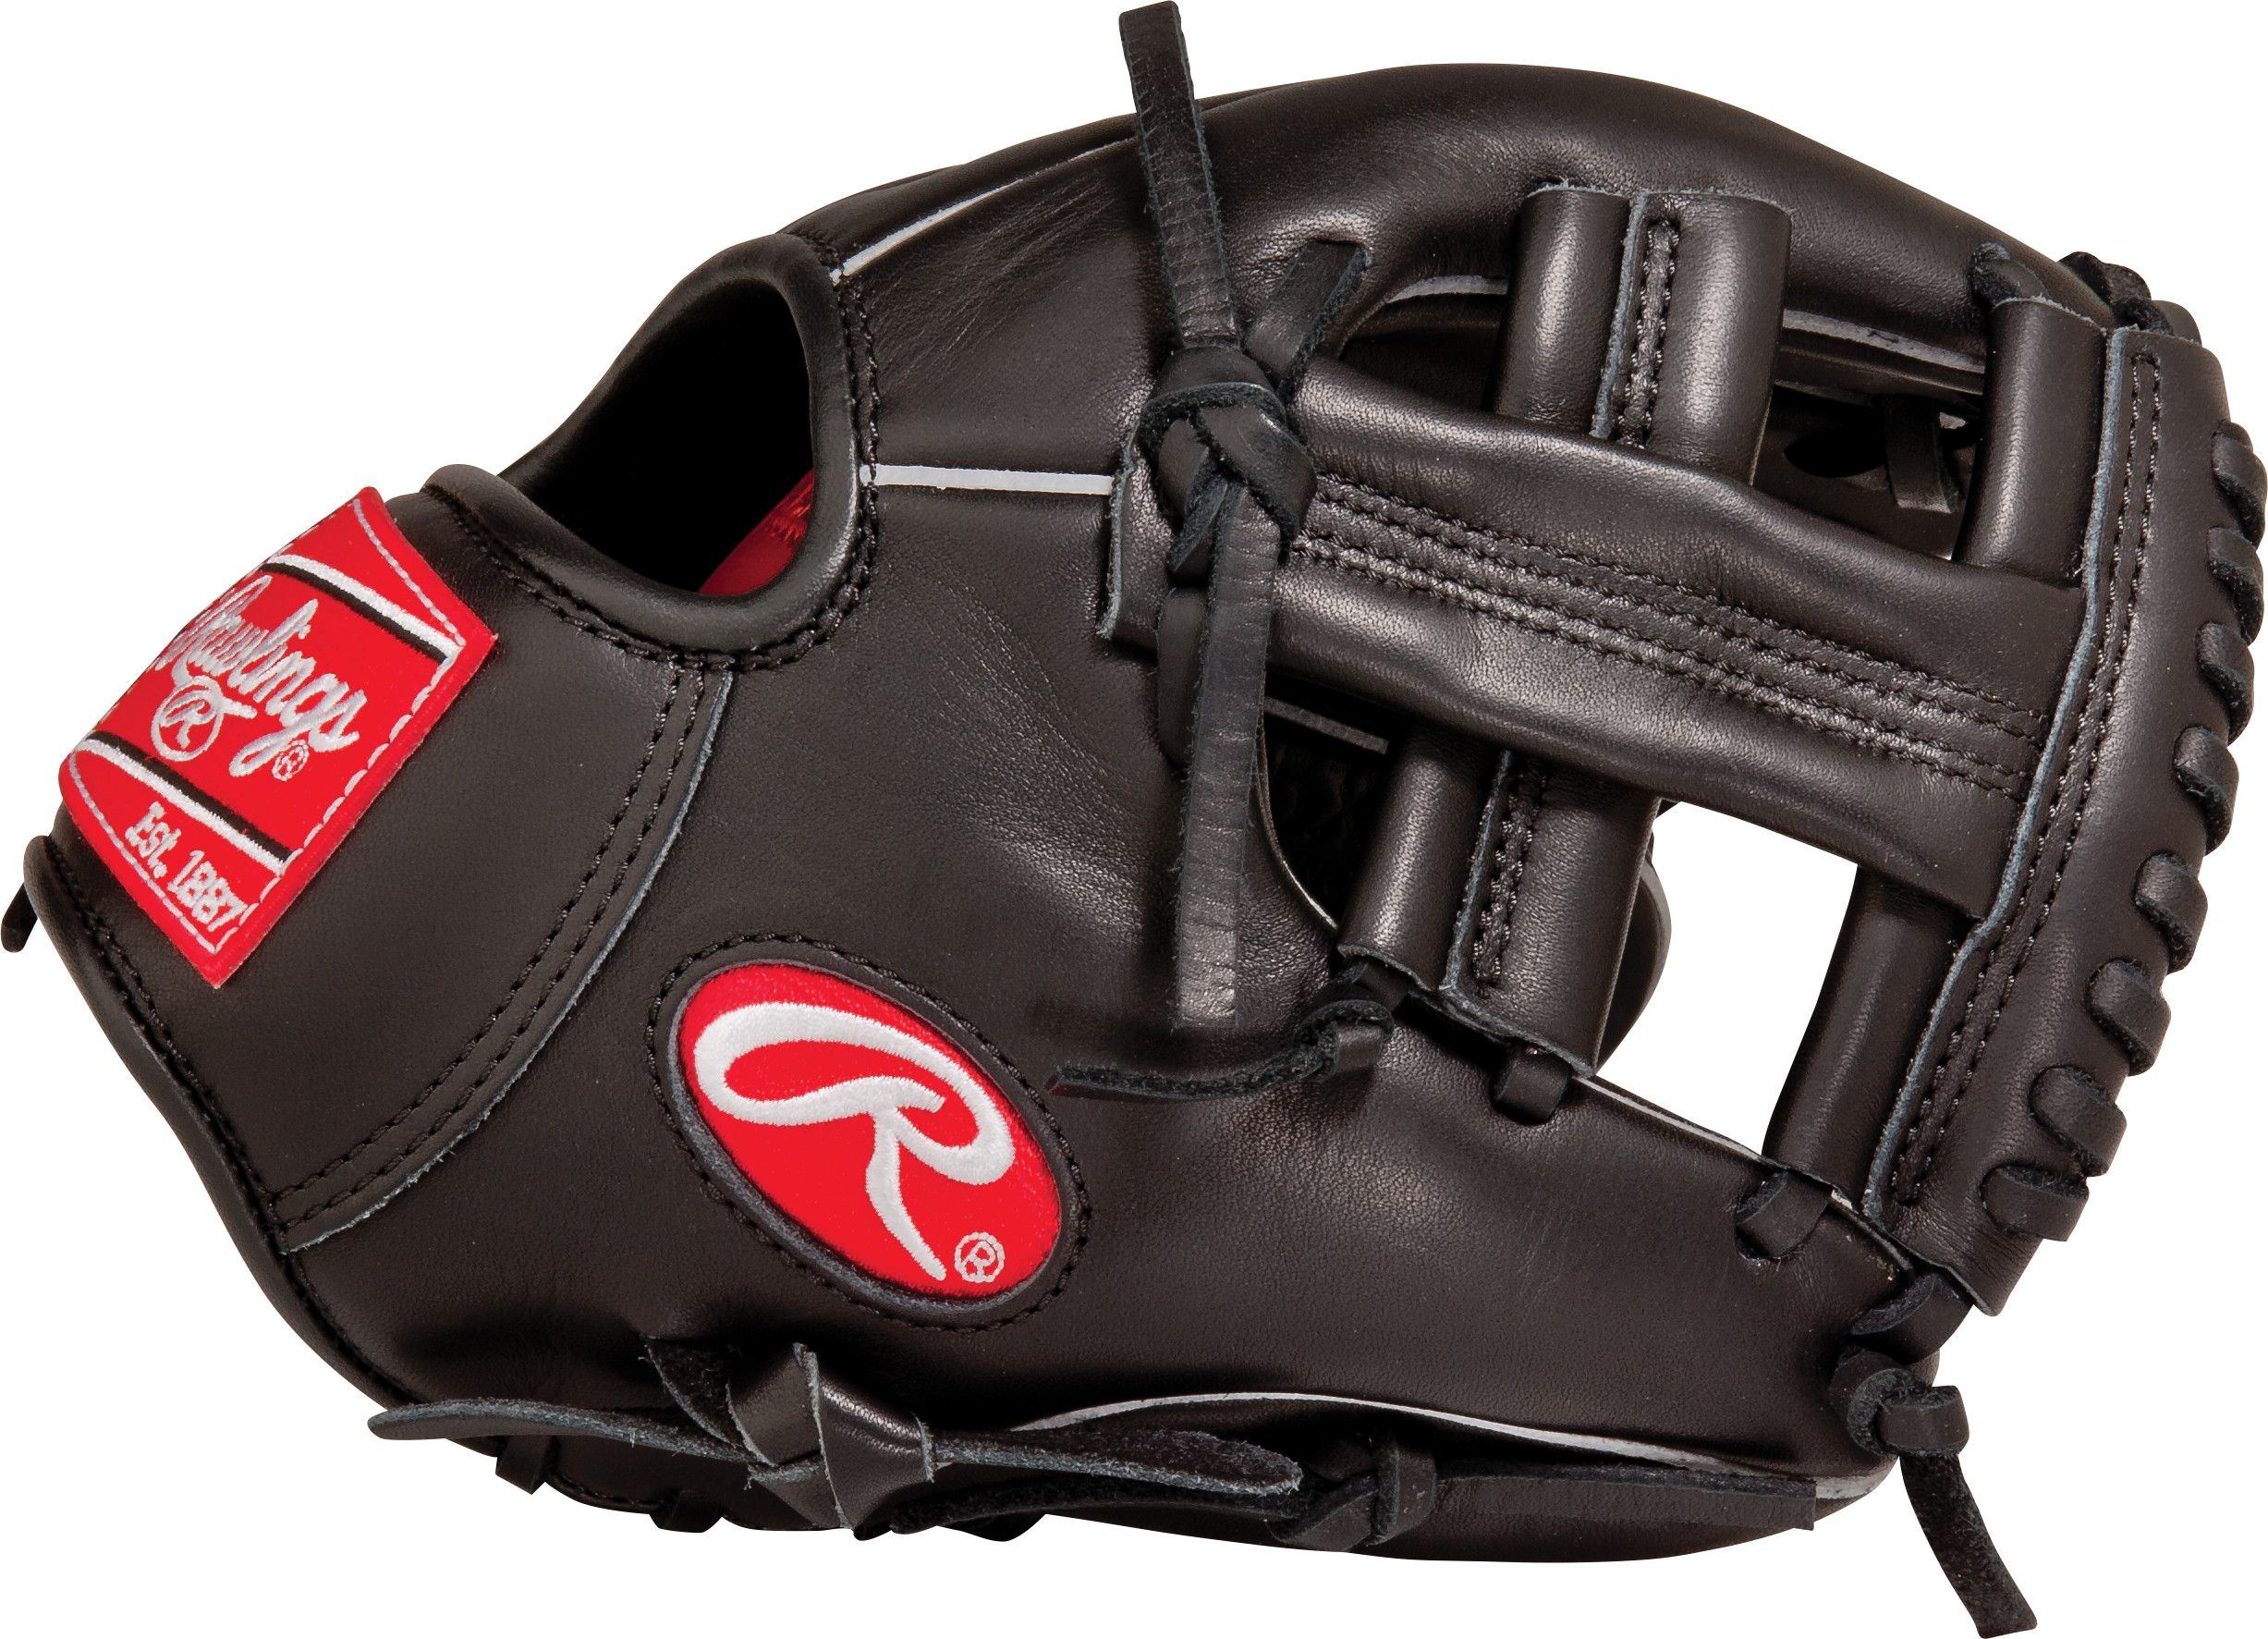 http://www.bestbatdeals.com/images/gloves/rawlings/G95XT_thumb.jpg